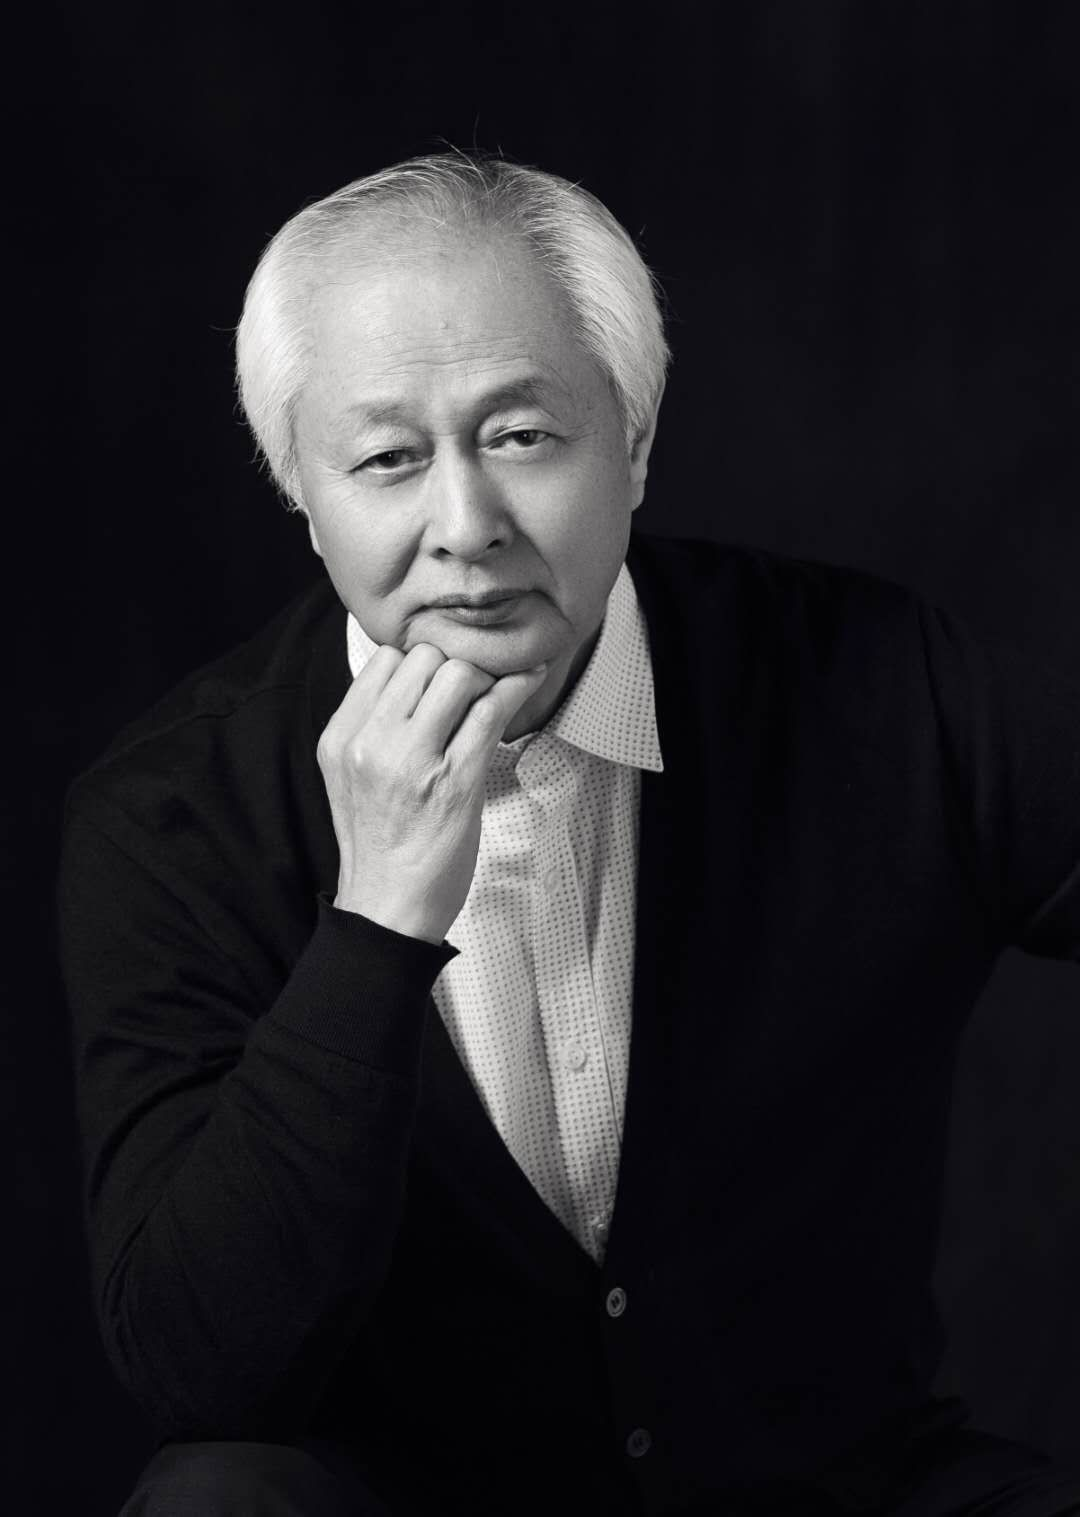 Pre-concert talk by renowned composer Zhao Jiping